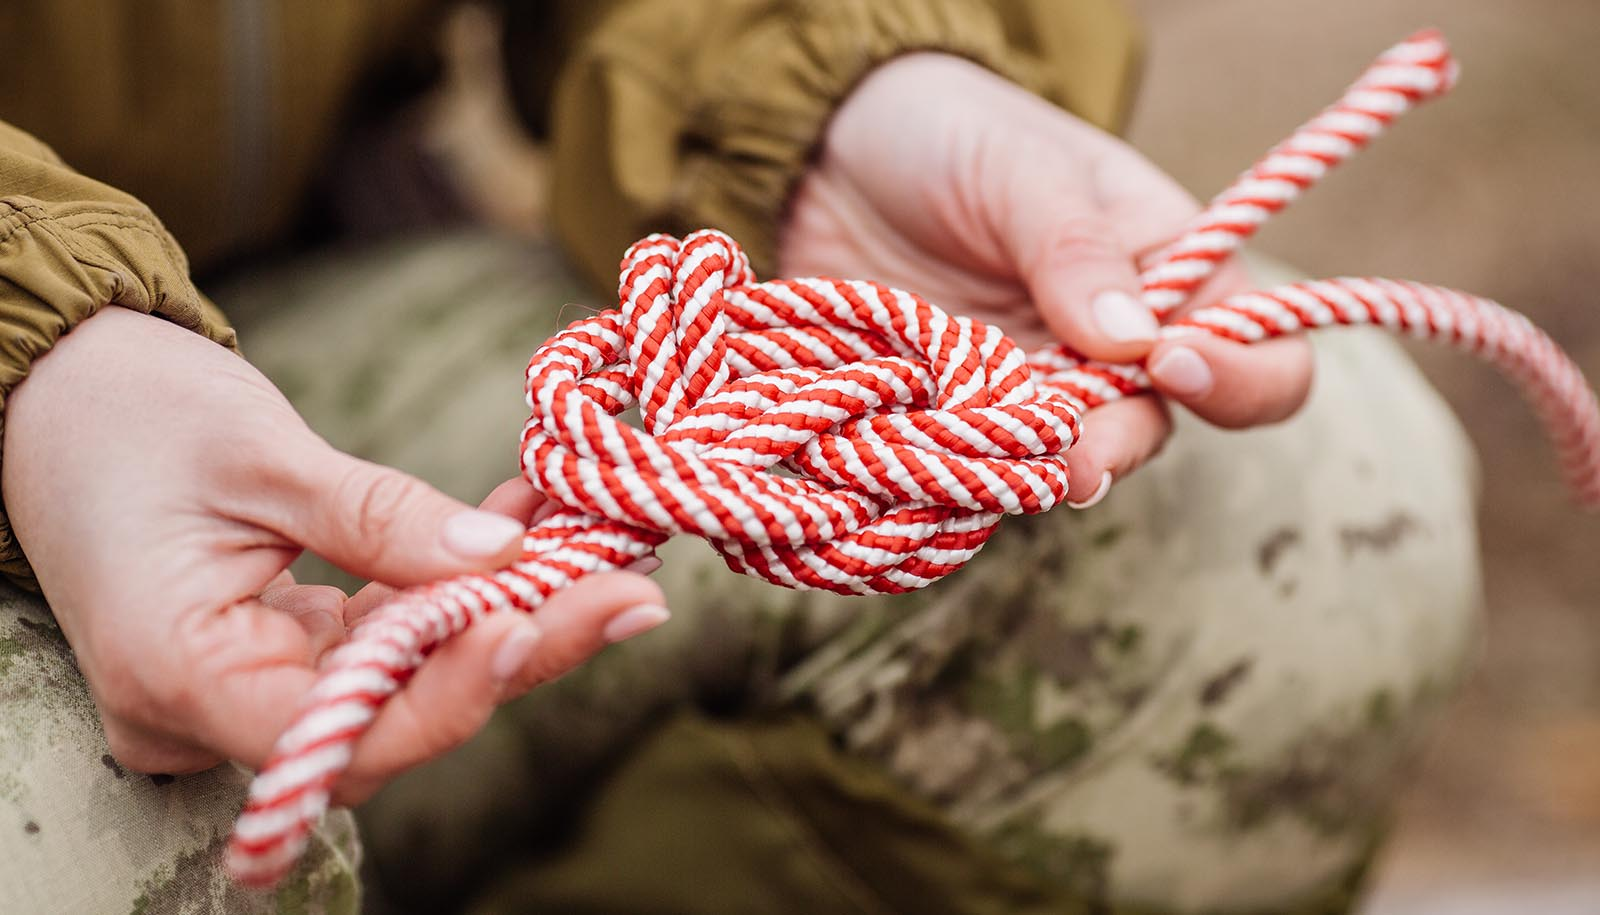 tying knot with rope